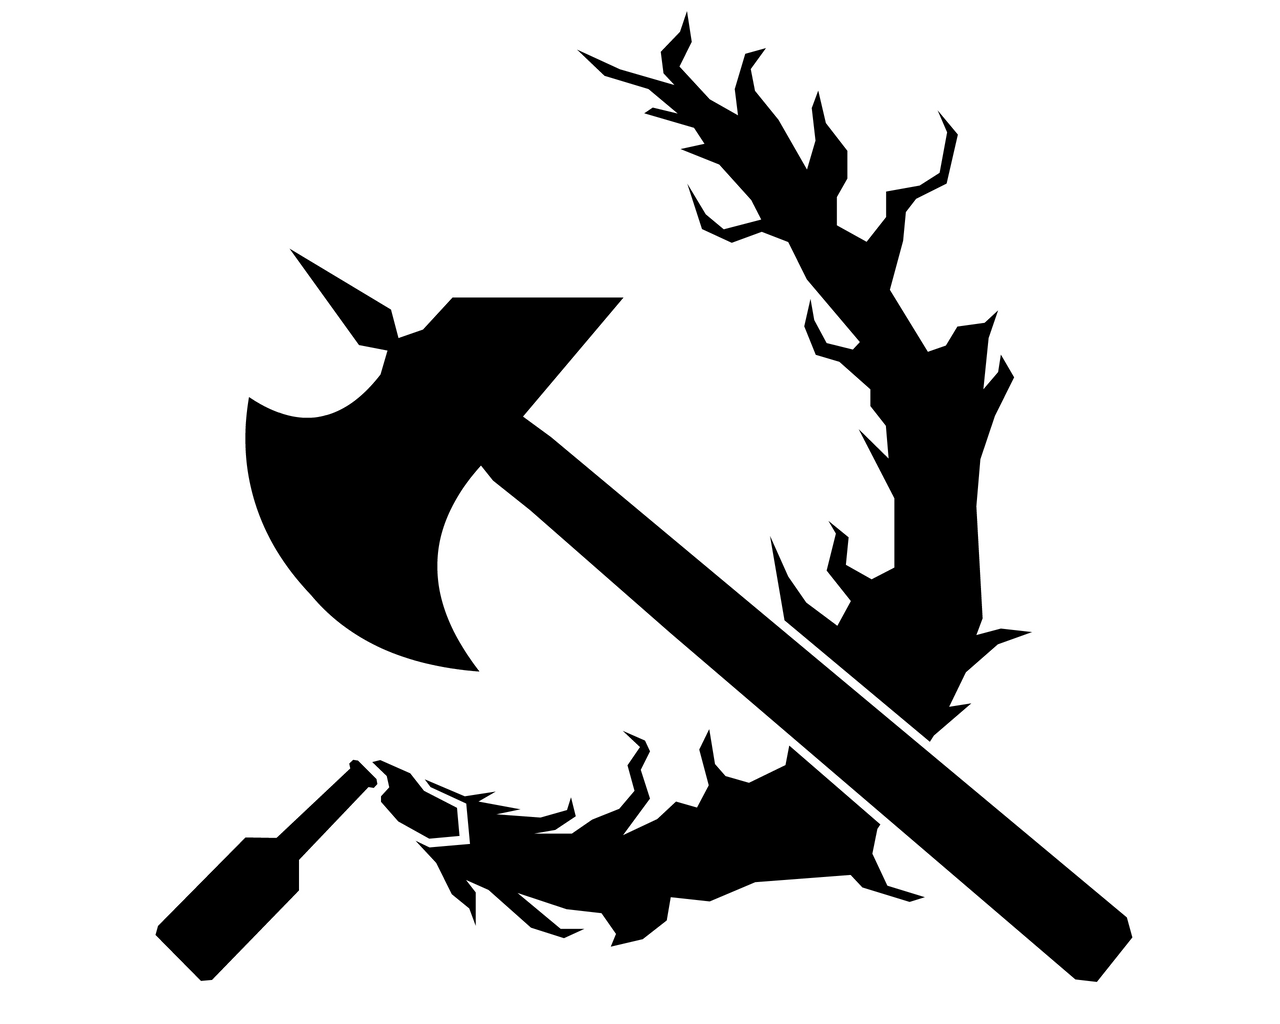 Public Domain Stencils : Stenciled molotov and axe by domain of the public on